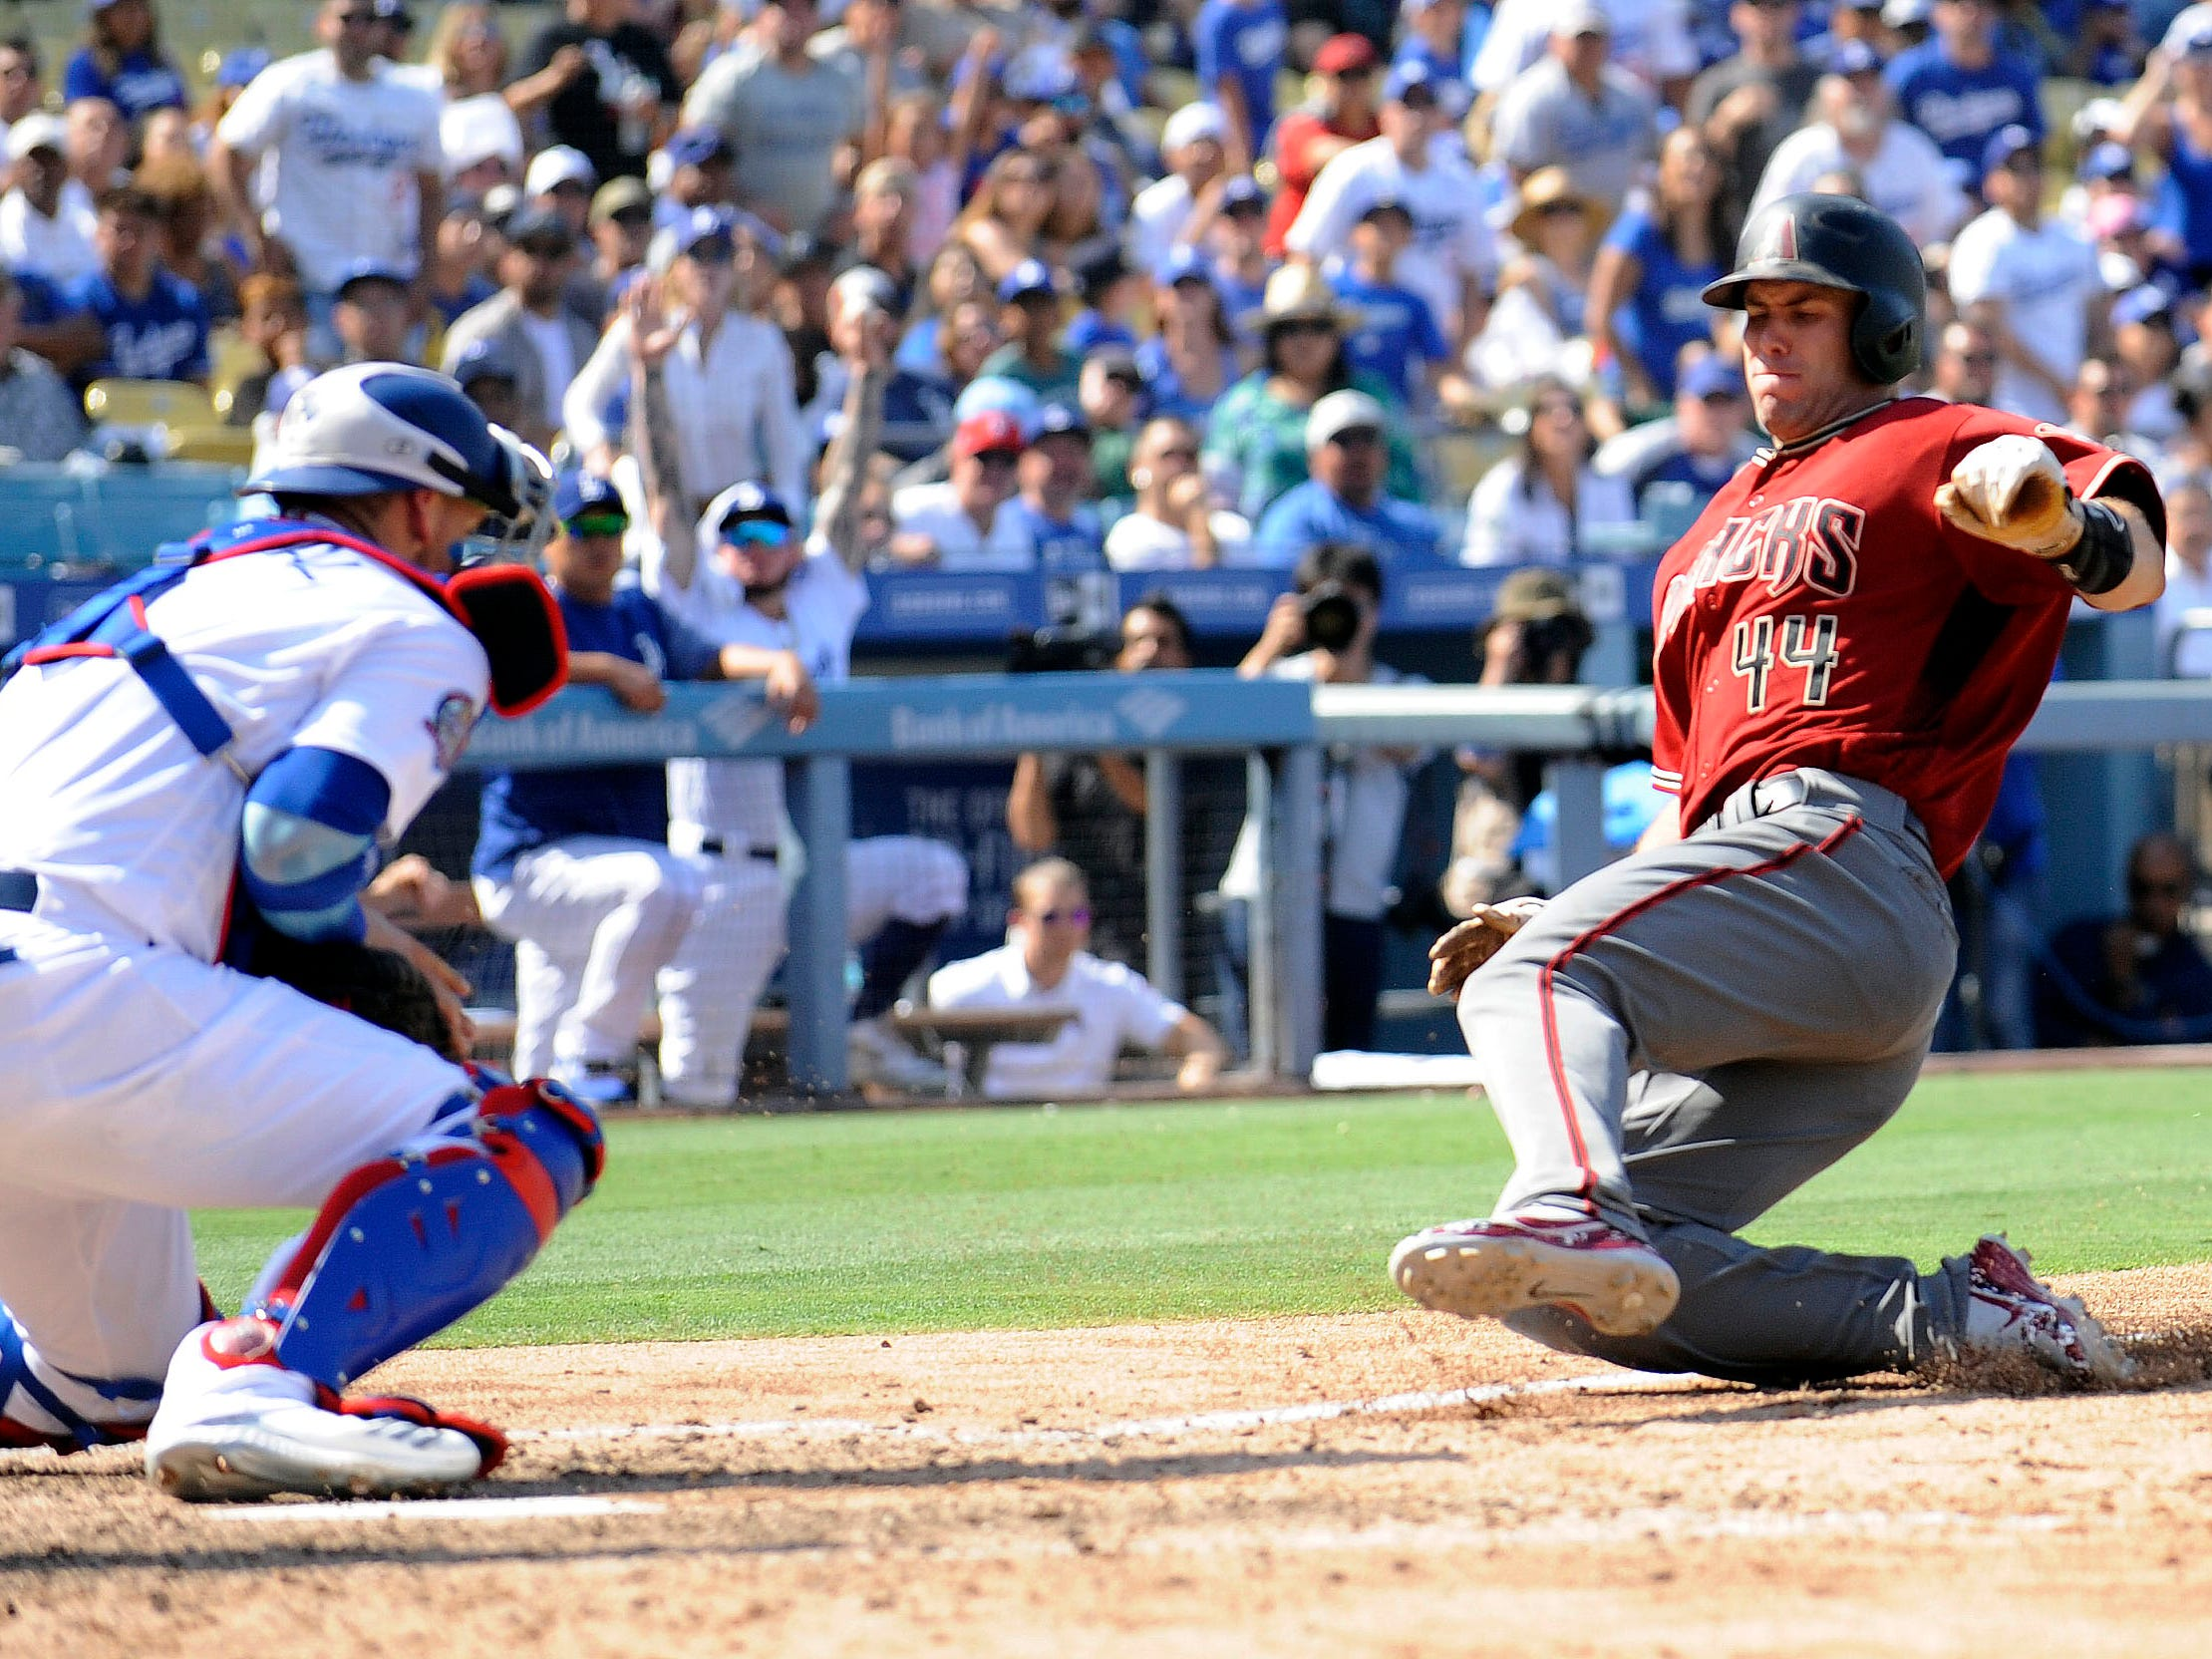 September 2, 2018; Los Angeles, CA, USA; Arizona Diamondbacks first baseman Paul Goldschmidt (44) reaches home but is tagged out by Los Angeles Dodgers catcher Yasmani Grandal (9) in the seventh inning at Dodger Stadium.  The call would be overturned on challenge.  Mandatory Credit: Gary A. Vasquez-USA TODAY Sports